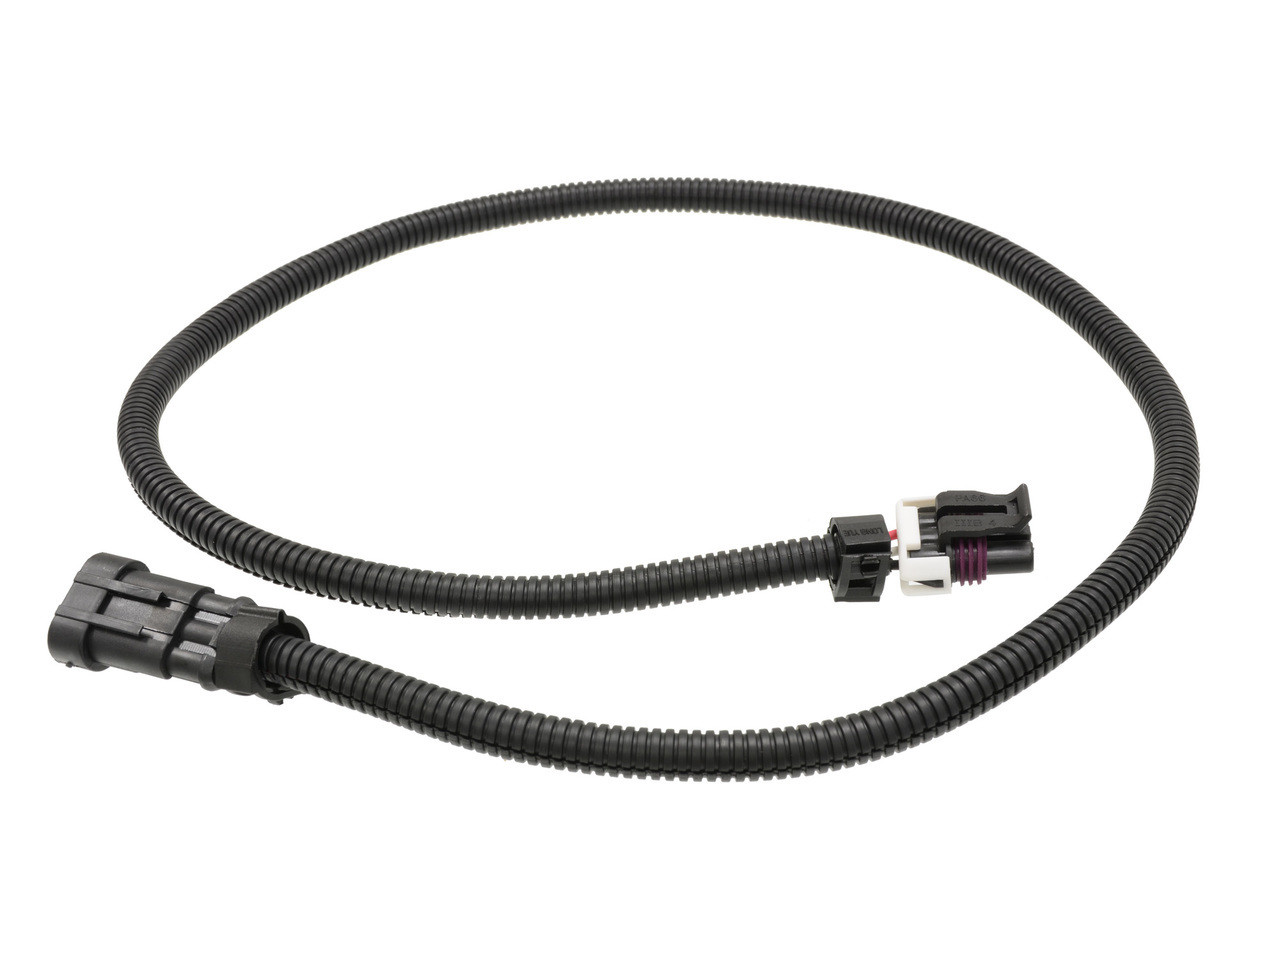 ls1 ls6 to ls2 l76 map 24 sensor extension adapter wiring harness